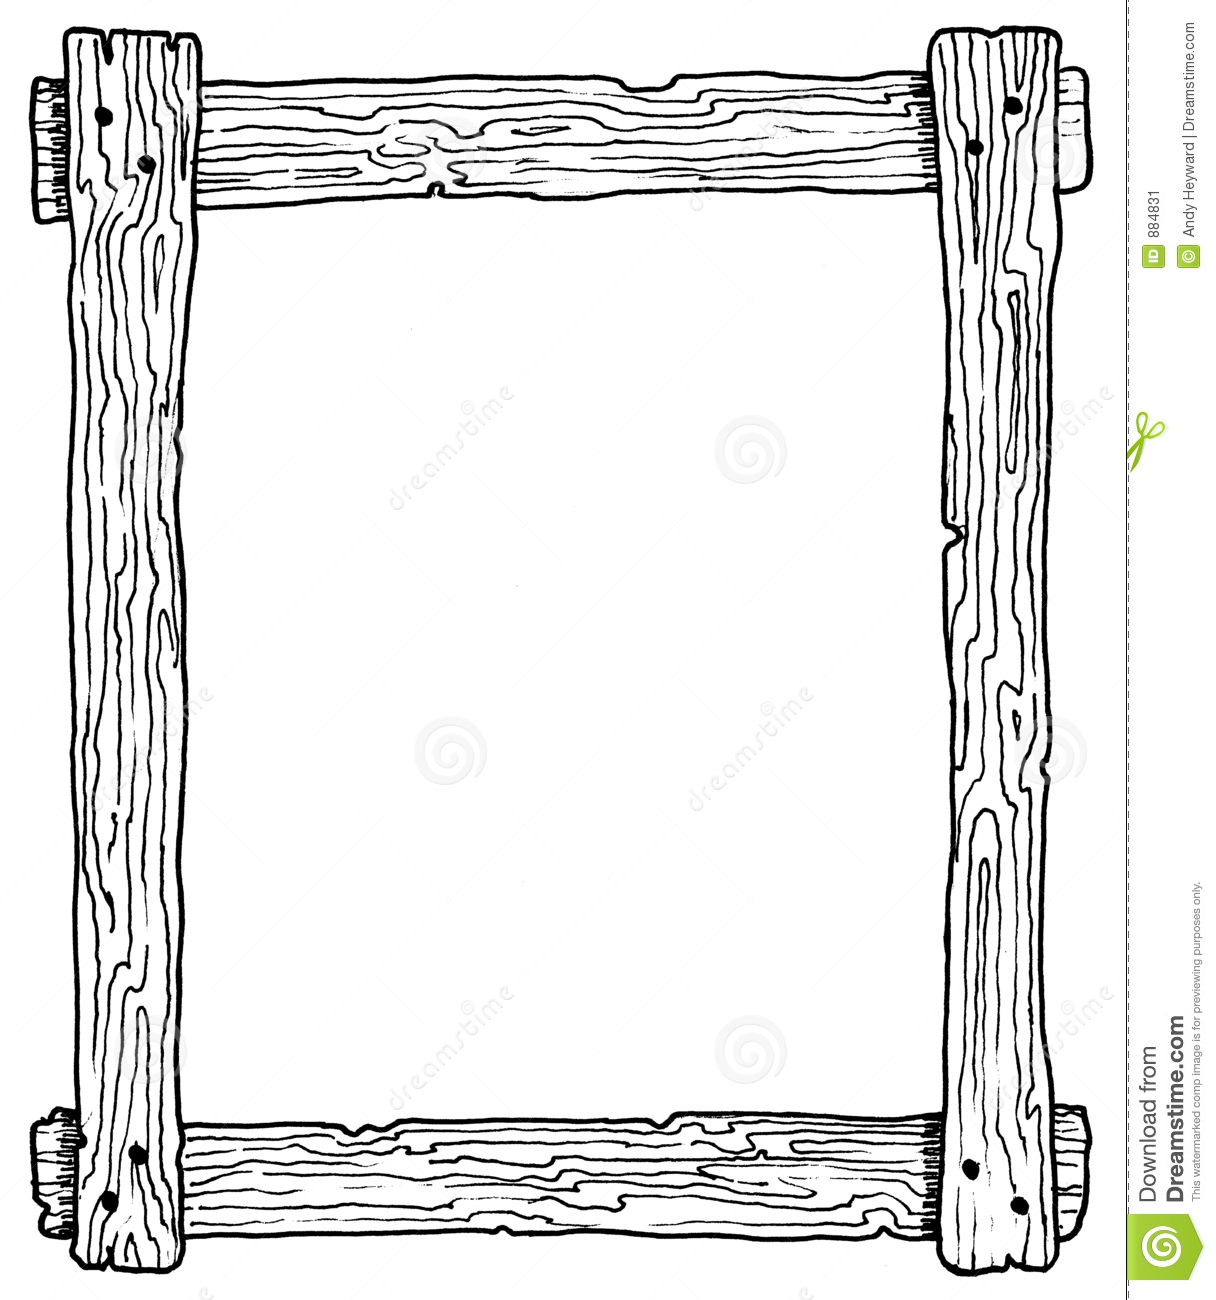 Wooden Frame stock illustration. Illustration of wood ...